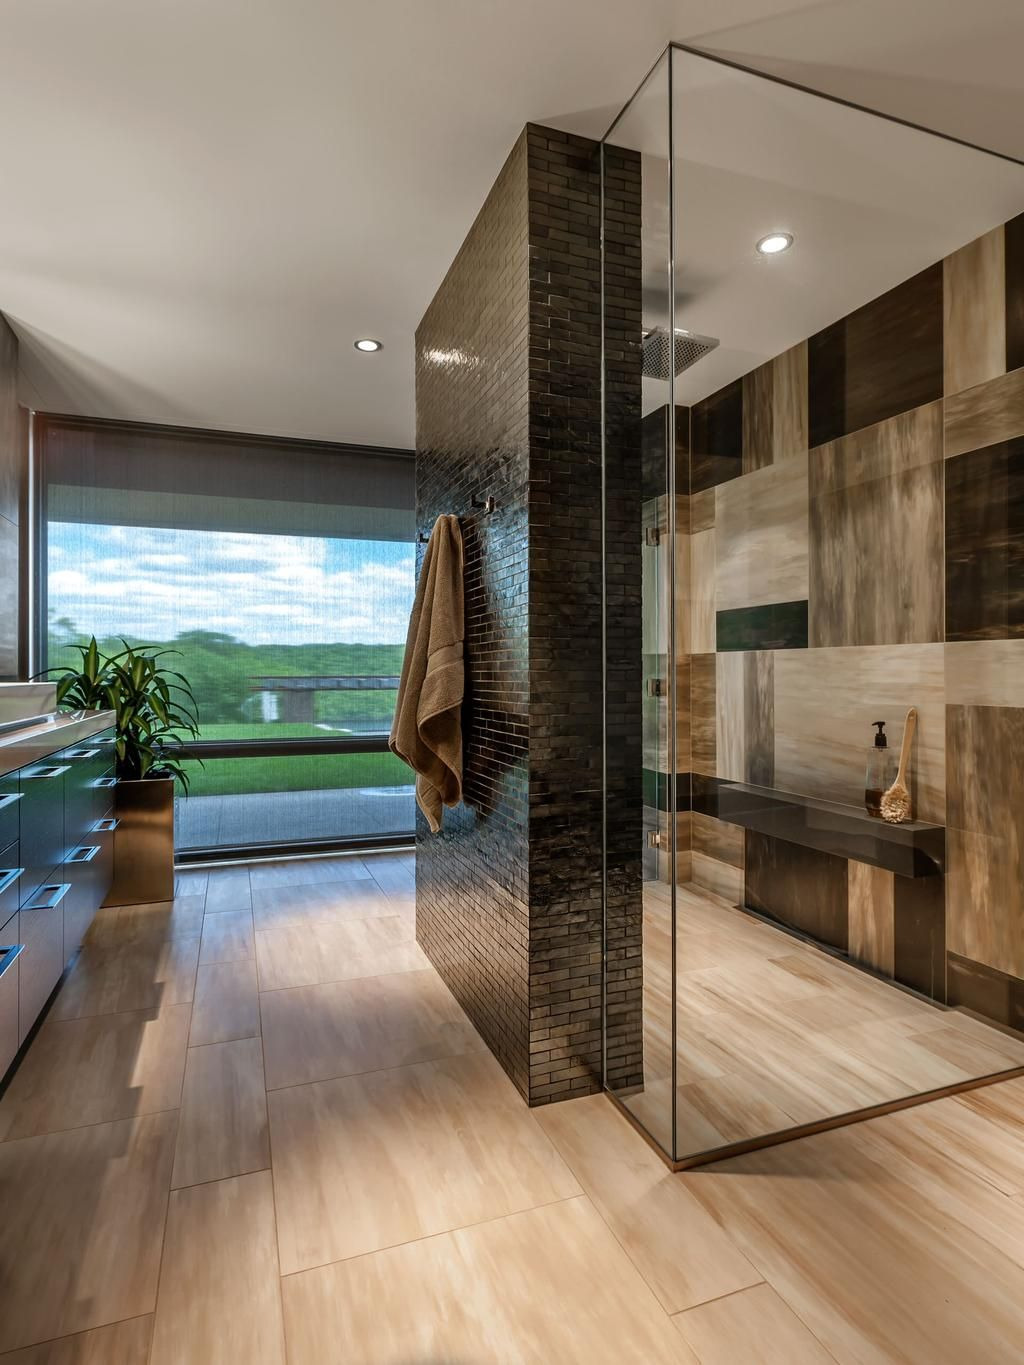 Large Walk In Shower Designs Beautiful Stunning Bathroom with A Large Walk In Shower Surrounded by